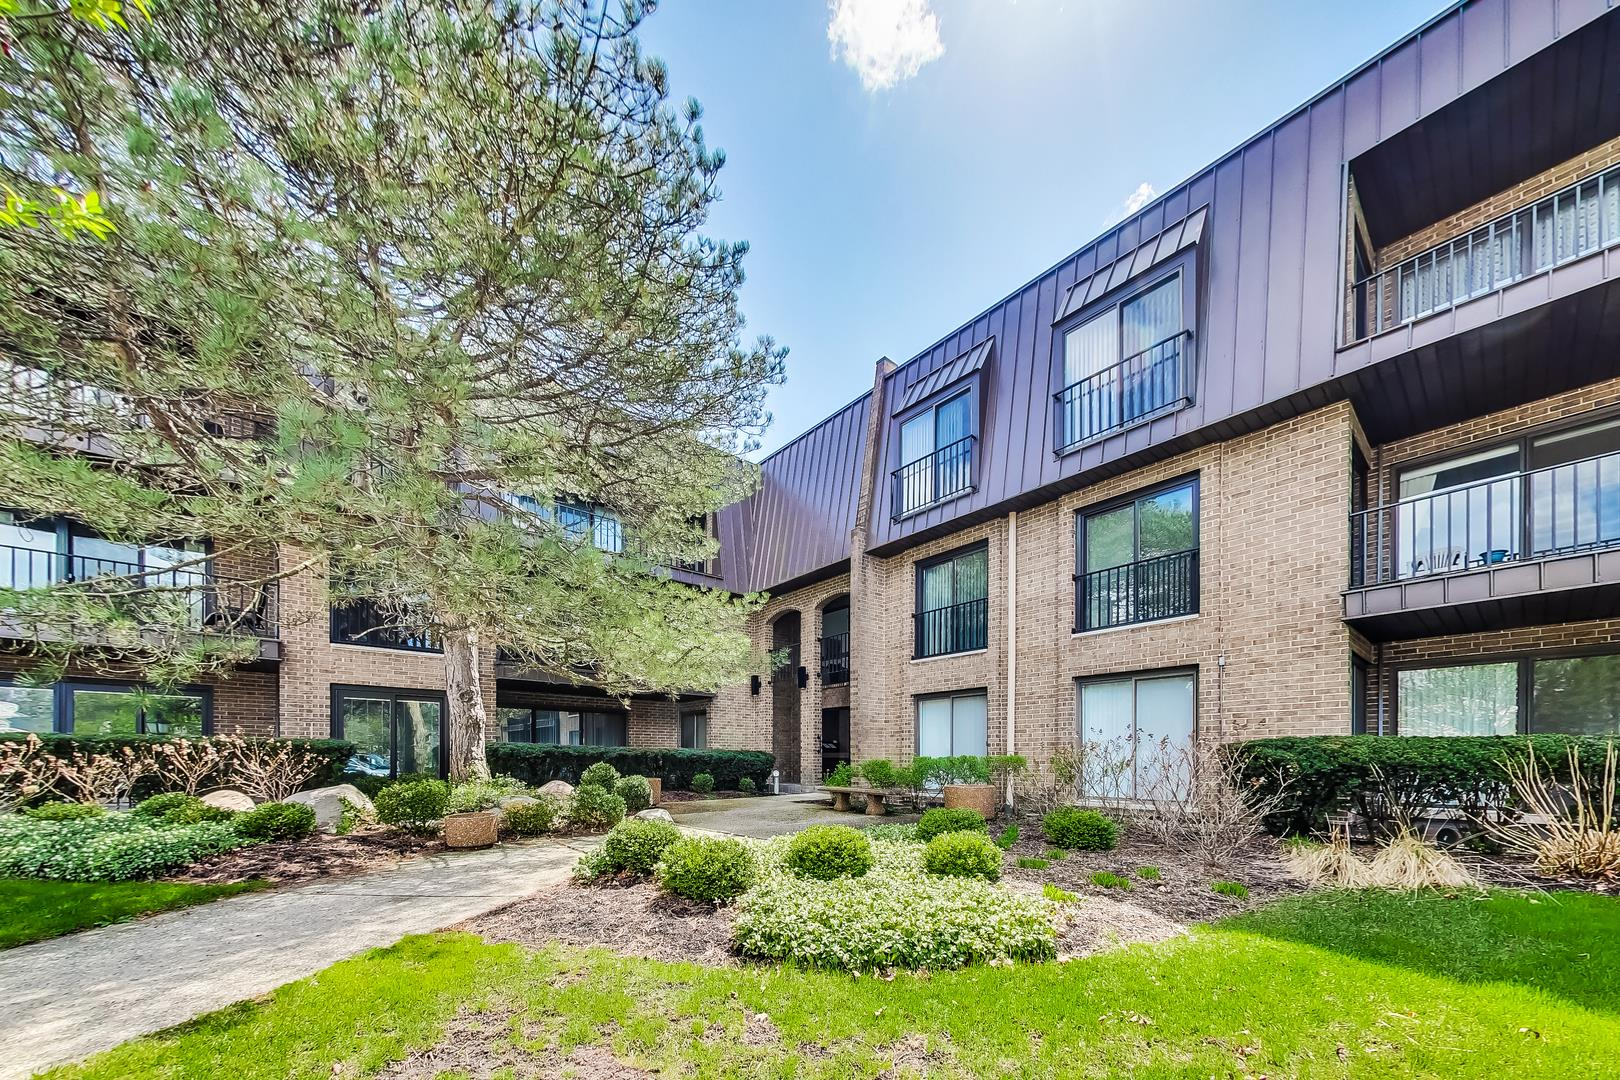 1 COURT OF HARBORSIDE Drive #203, Northbrook, IL 60062 - #: 11053397